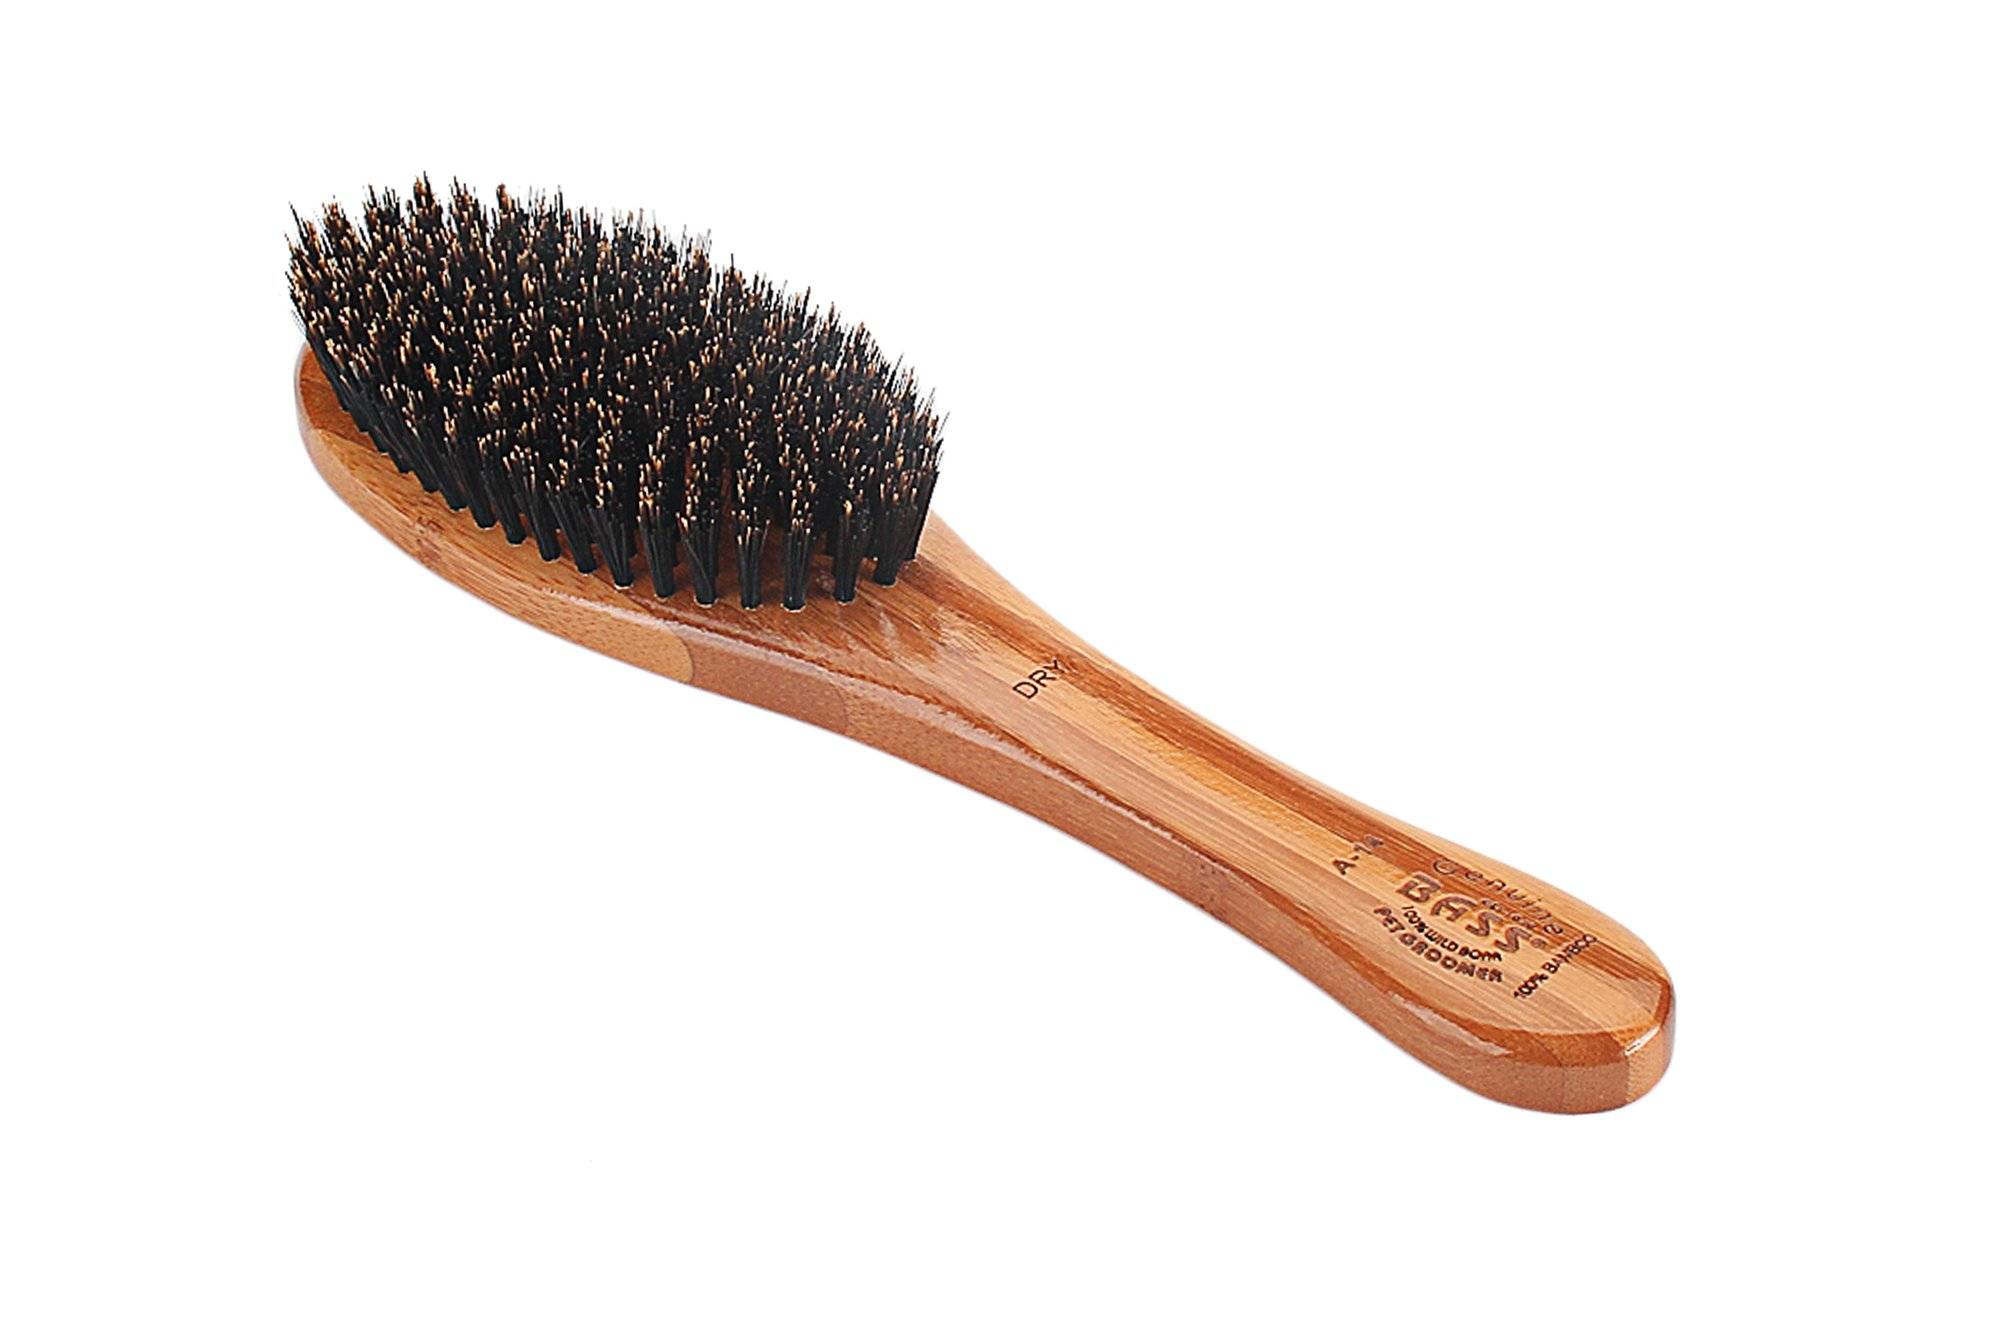 Bass Brushes | Luxury Grade Pet Brush | Shine & Condition | 100% Pure Premium Natural Bristle - Firm | Full Oval Design | Natural Bamboo Handle | Solid Finish Model #A14-DB